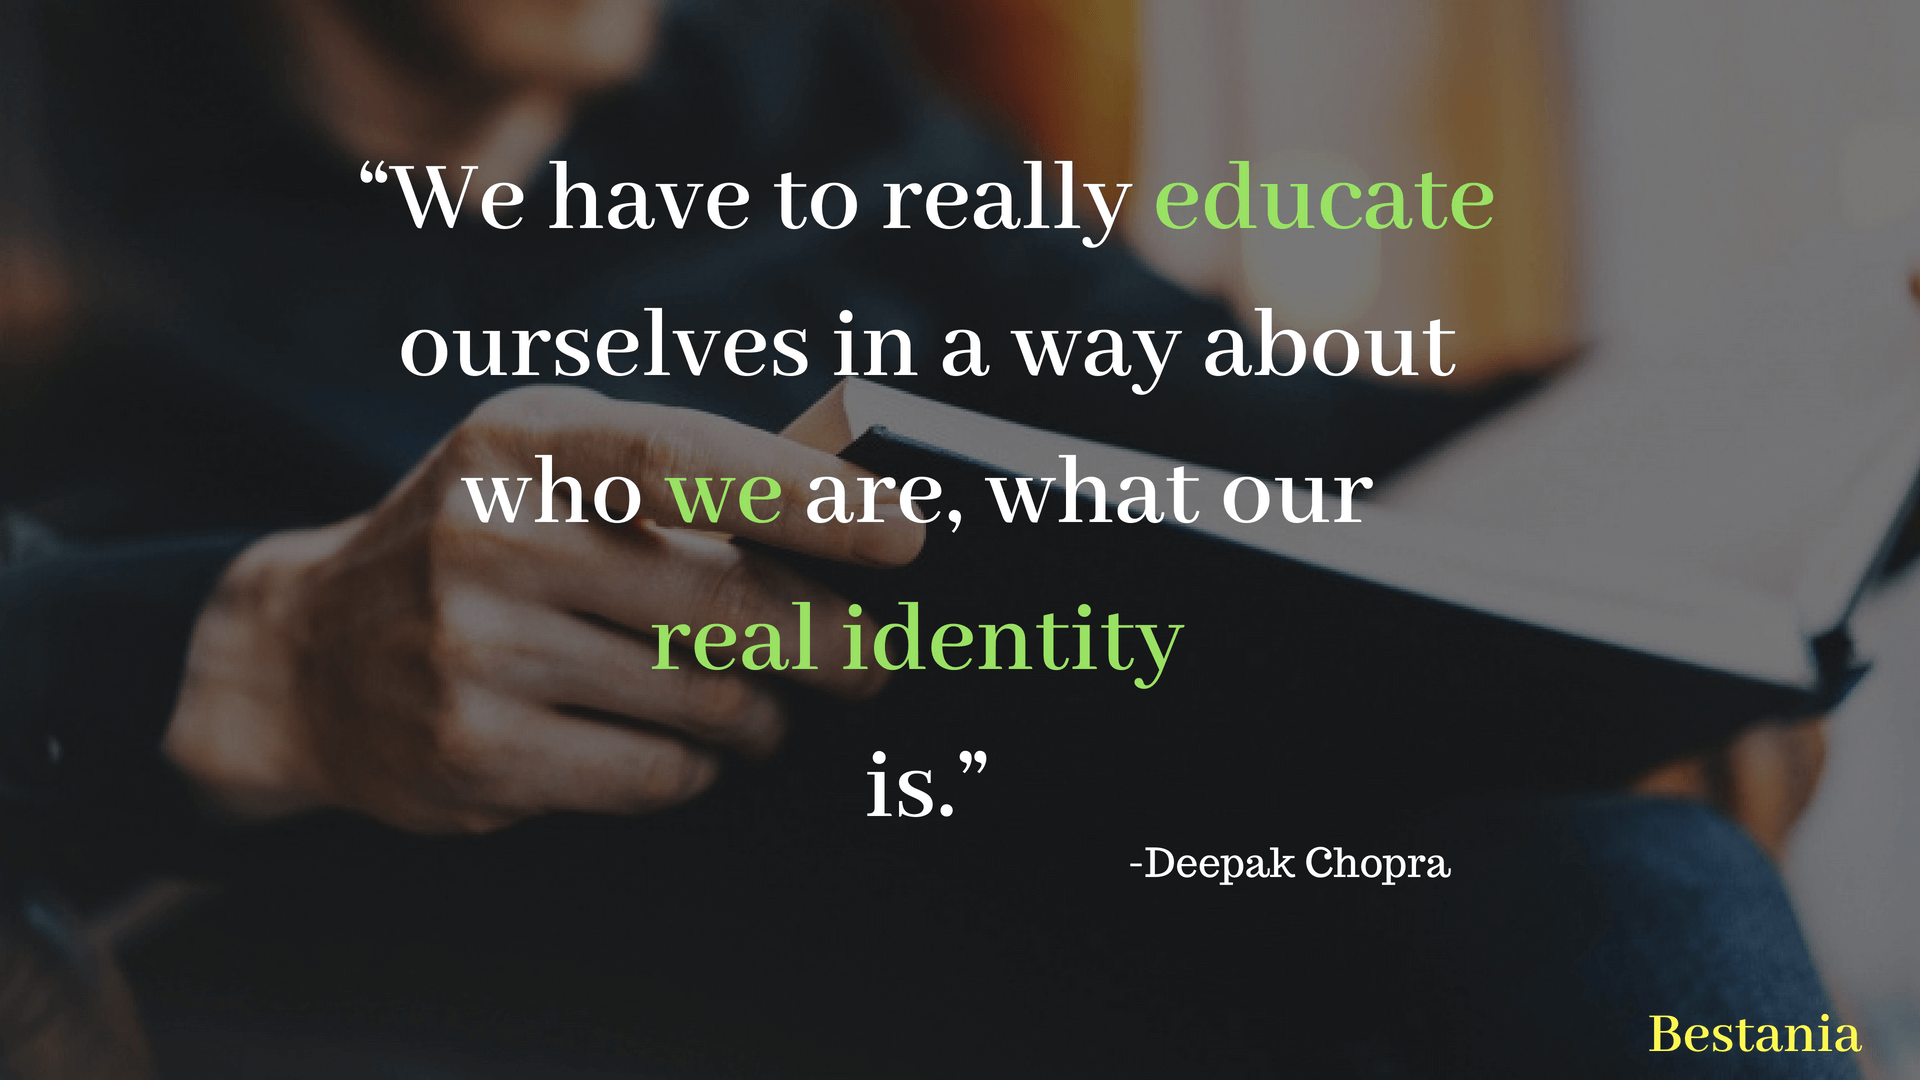 """We have to really educate ourselves in a way about who we are, what our real identity is."" – Deepak Chopra"